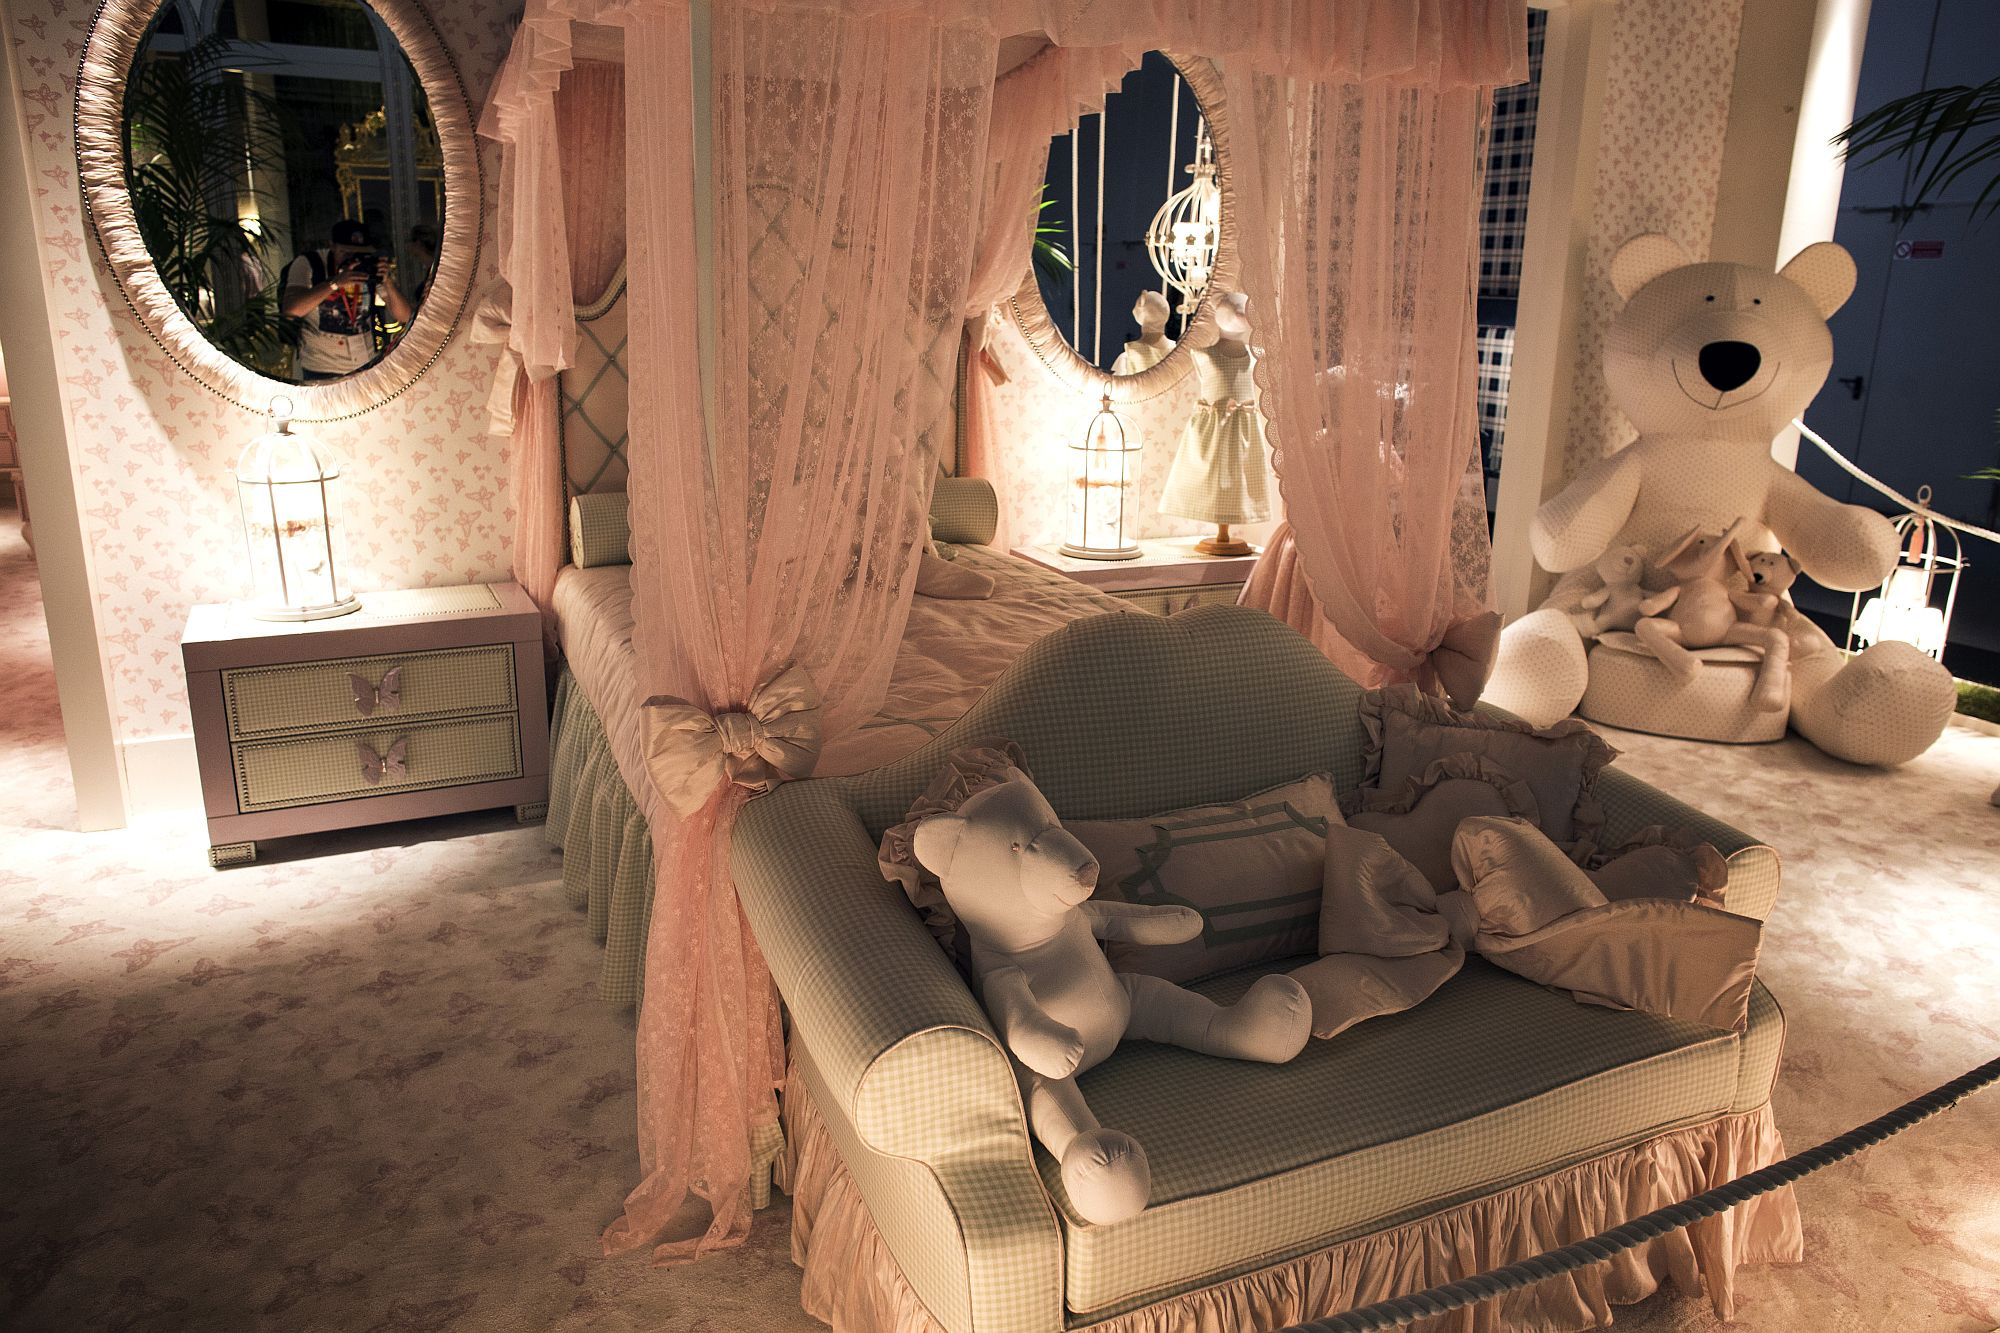 Four-poster-bed-with-canopy-becomes-the-focal-point-of-the-lavish-princess-themed-kids-room